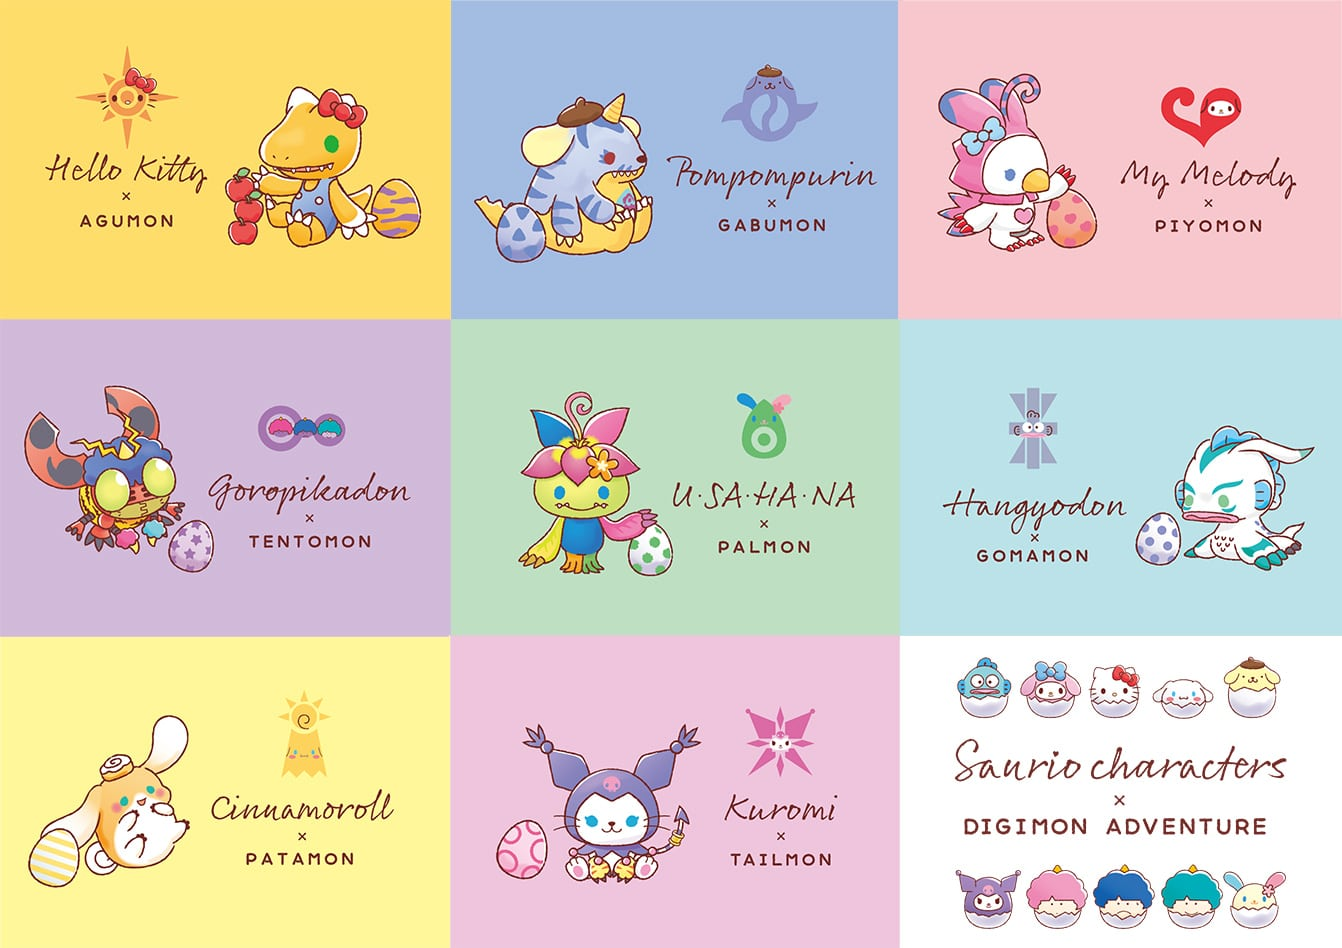 The original Digimon characters get a cute Sanrio makeover 15